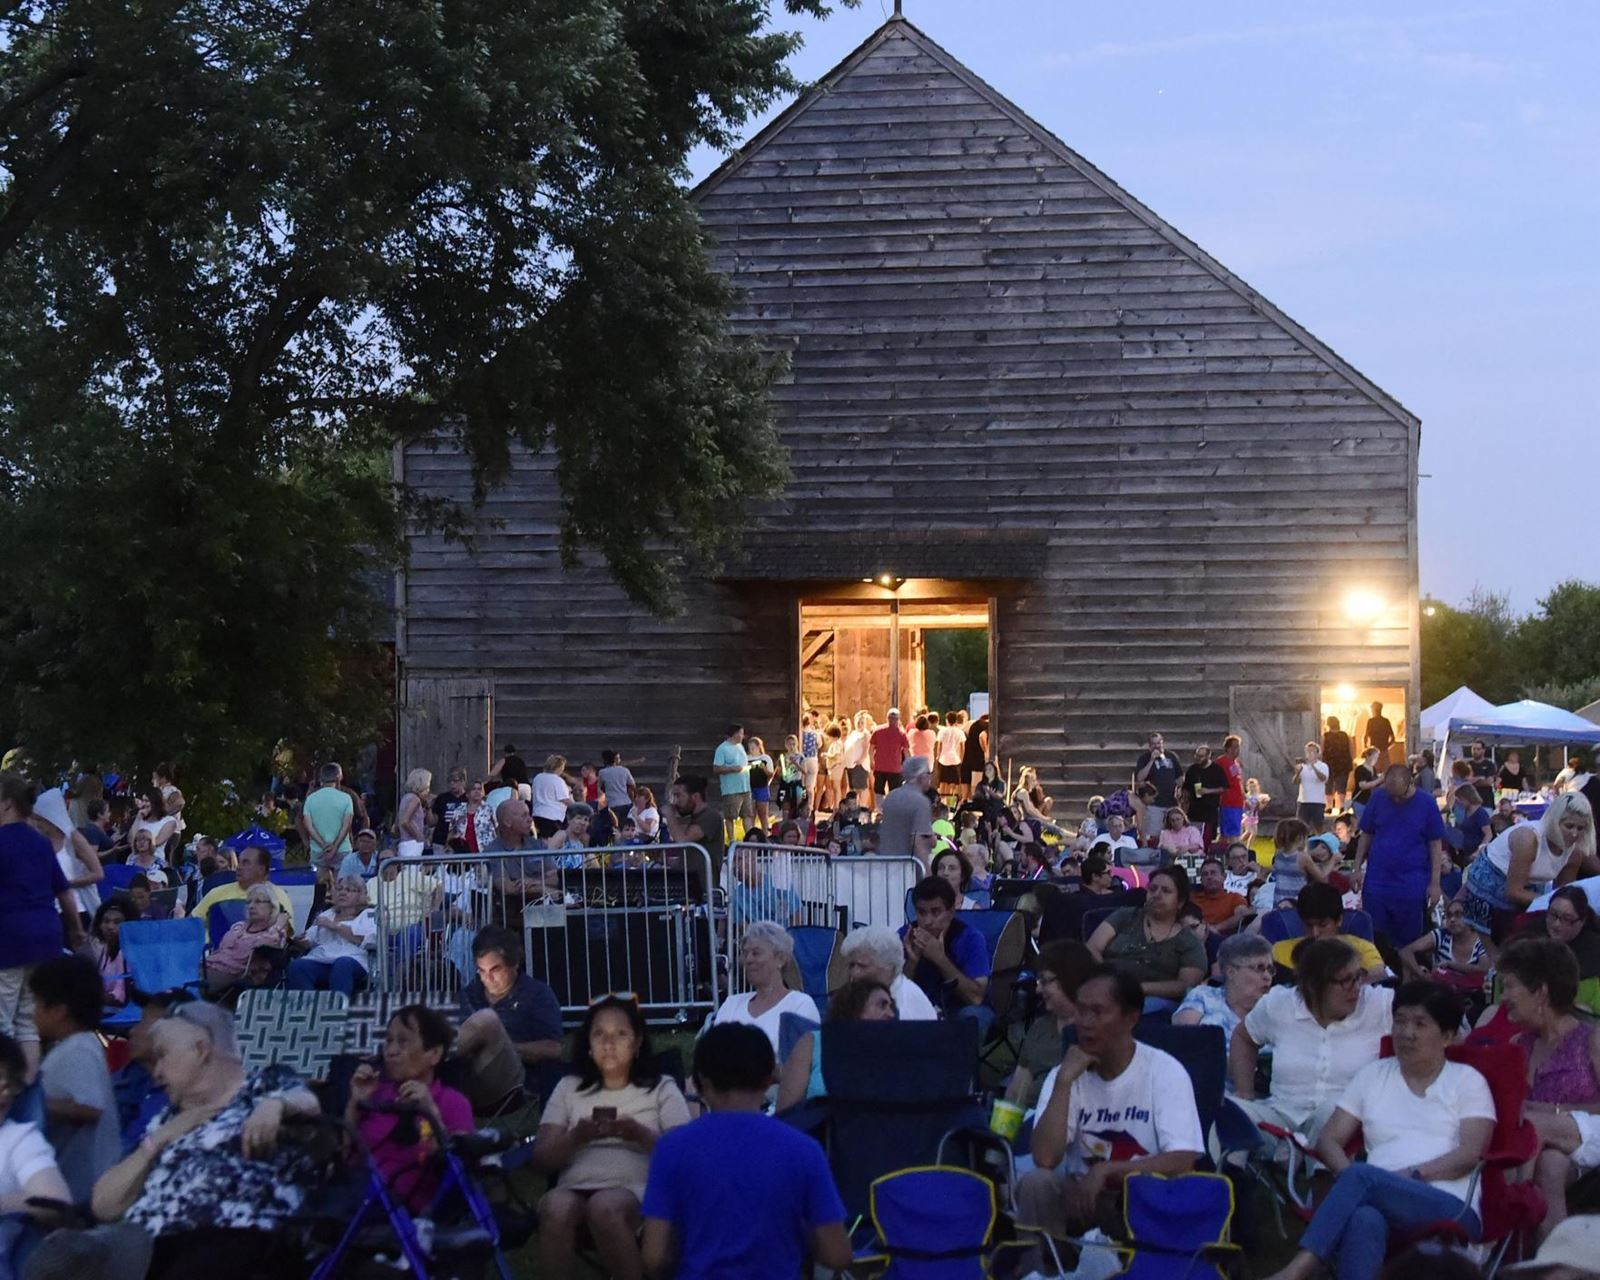 New programming has brought in new audiences at the Schenectady County Historical Society like their Independence Day Celebration with the Schenectady Symphony (pictured above). Image courtesy Schenectady County Historical Society.